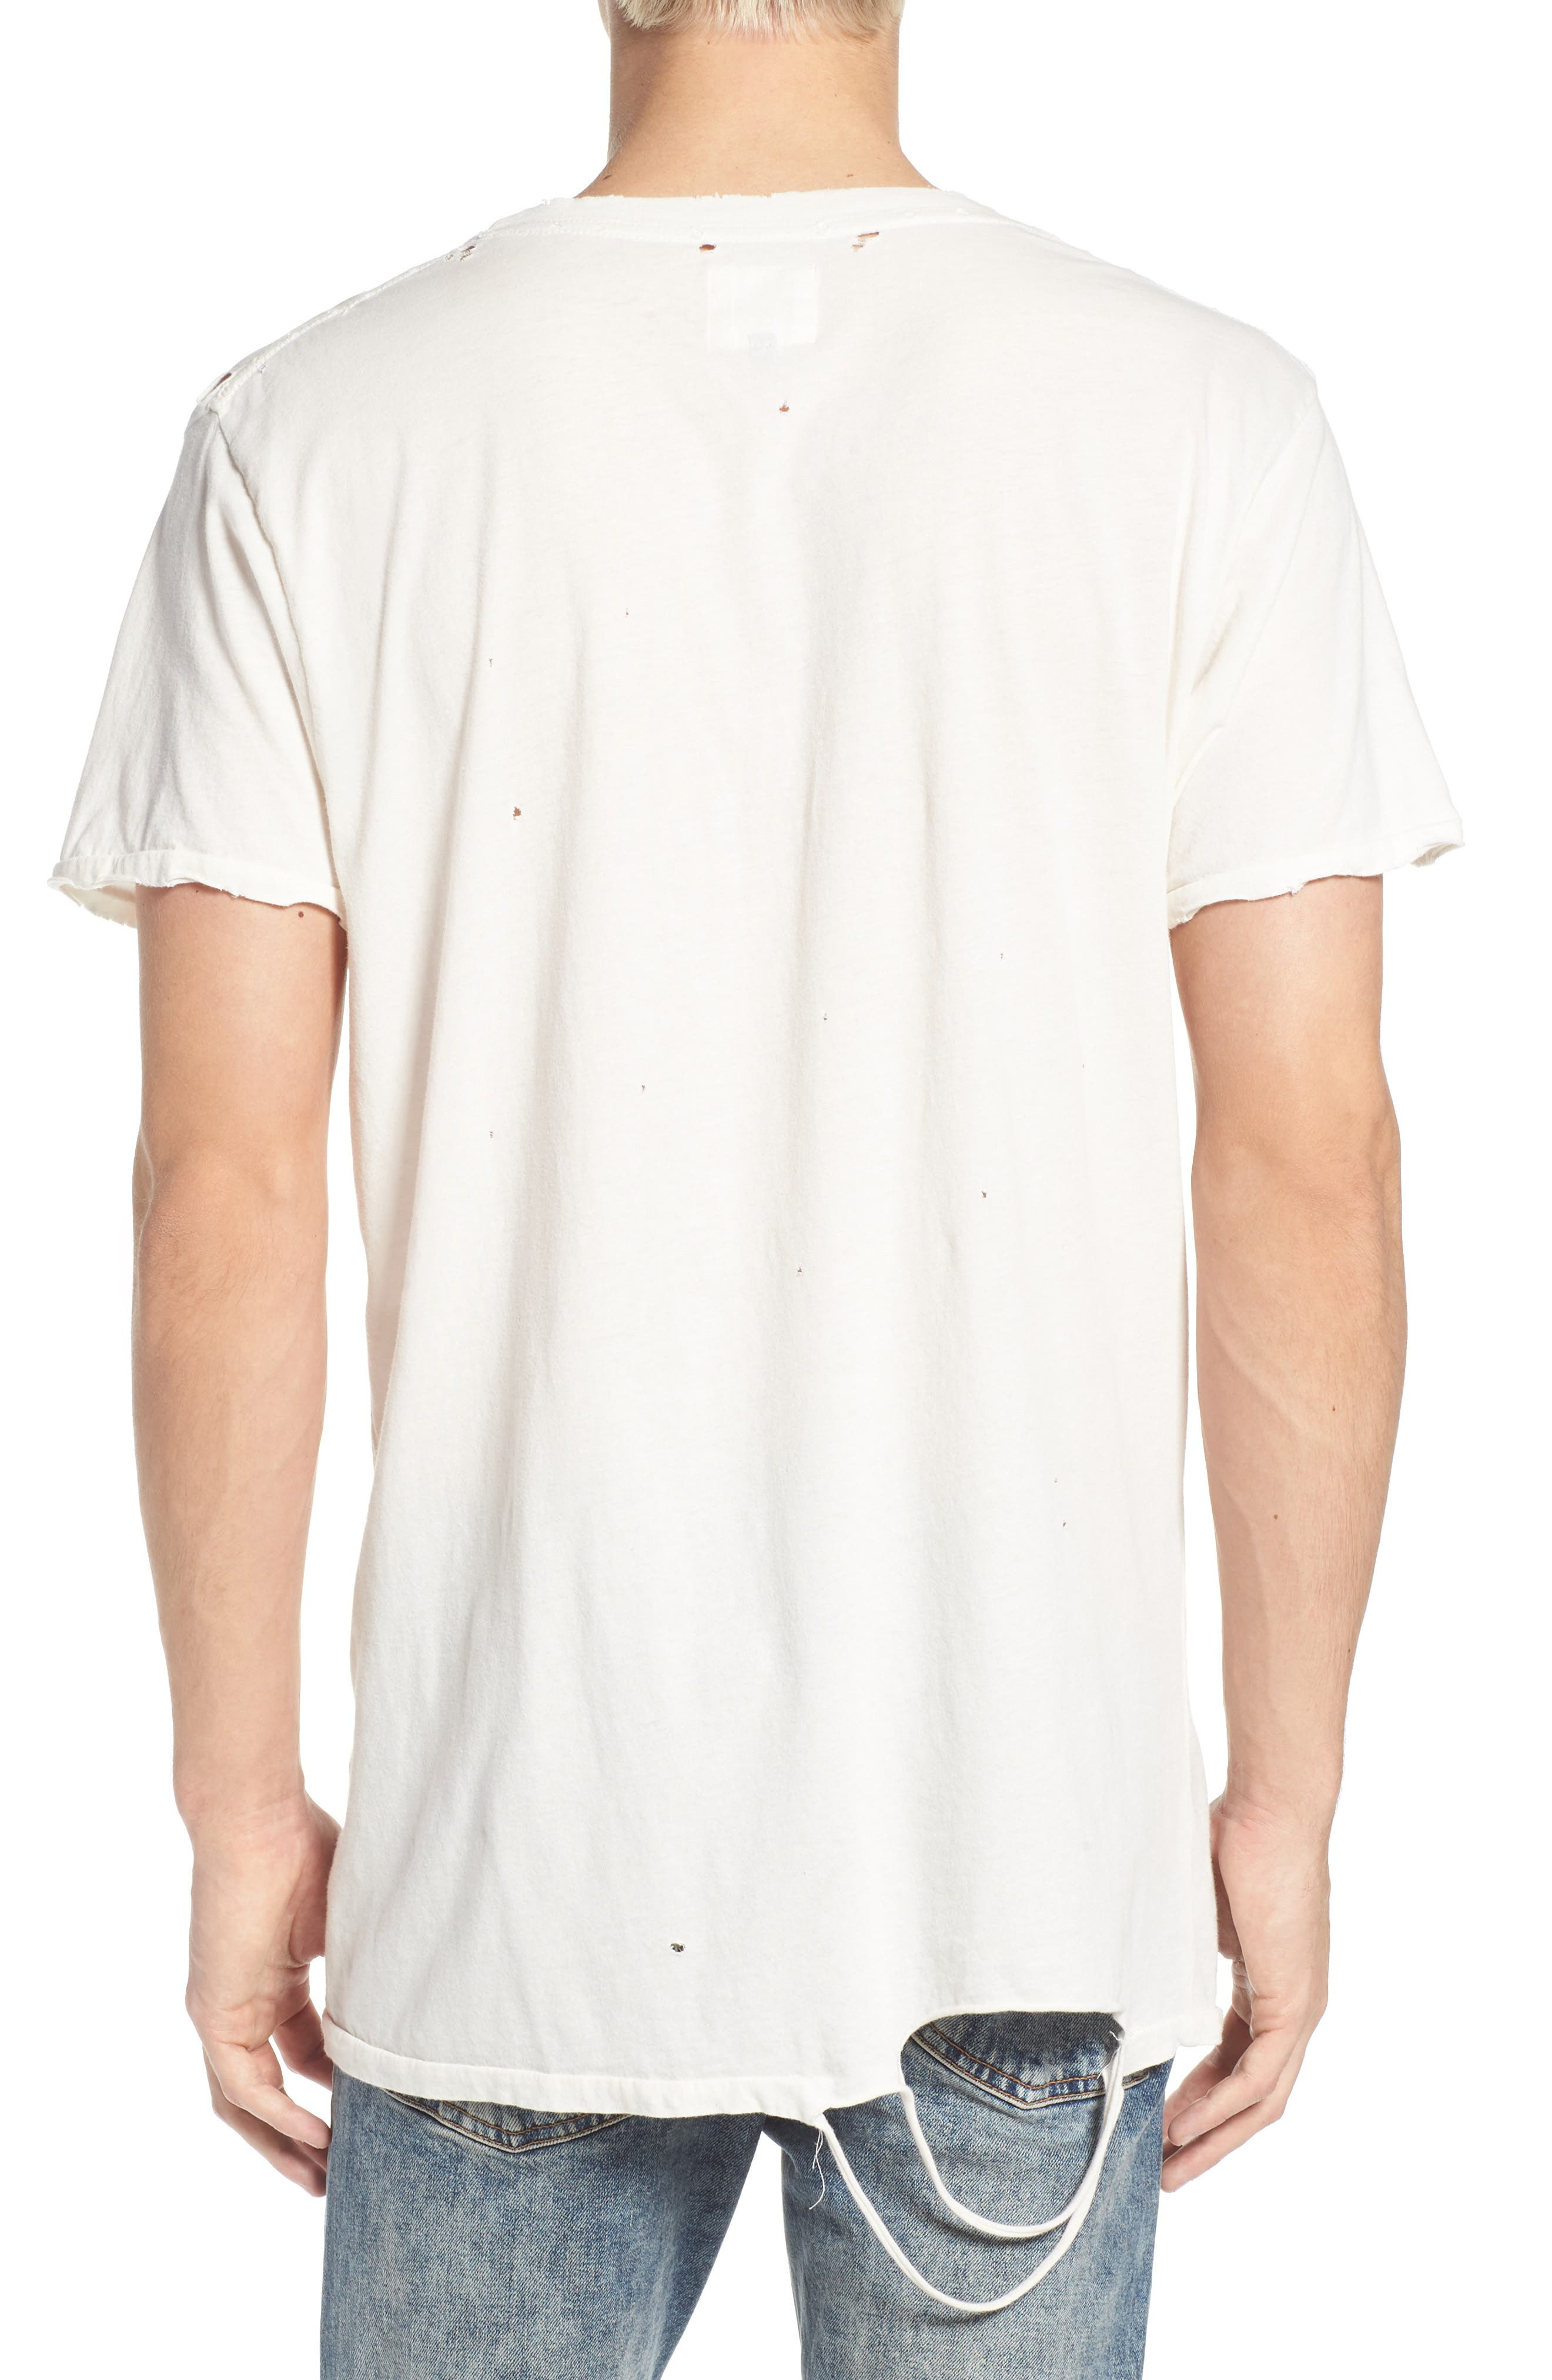 American Dreams Distressed Graphic T-Shirt,                             Alternate thumbnail 2, color,                             White